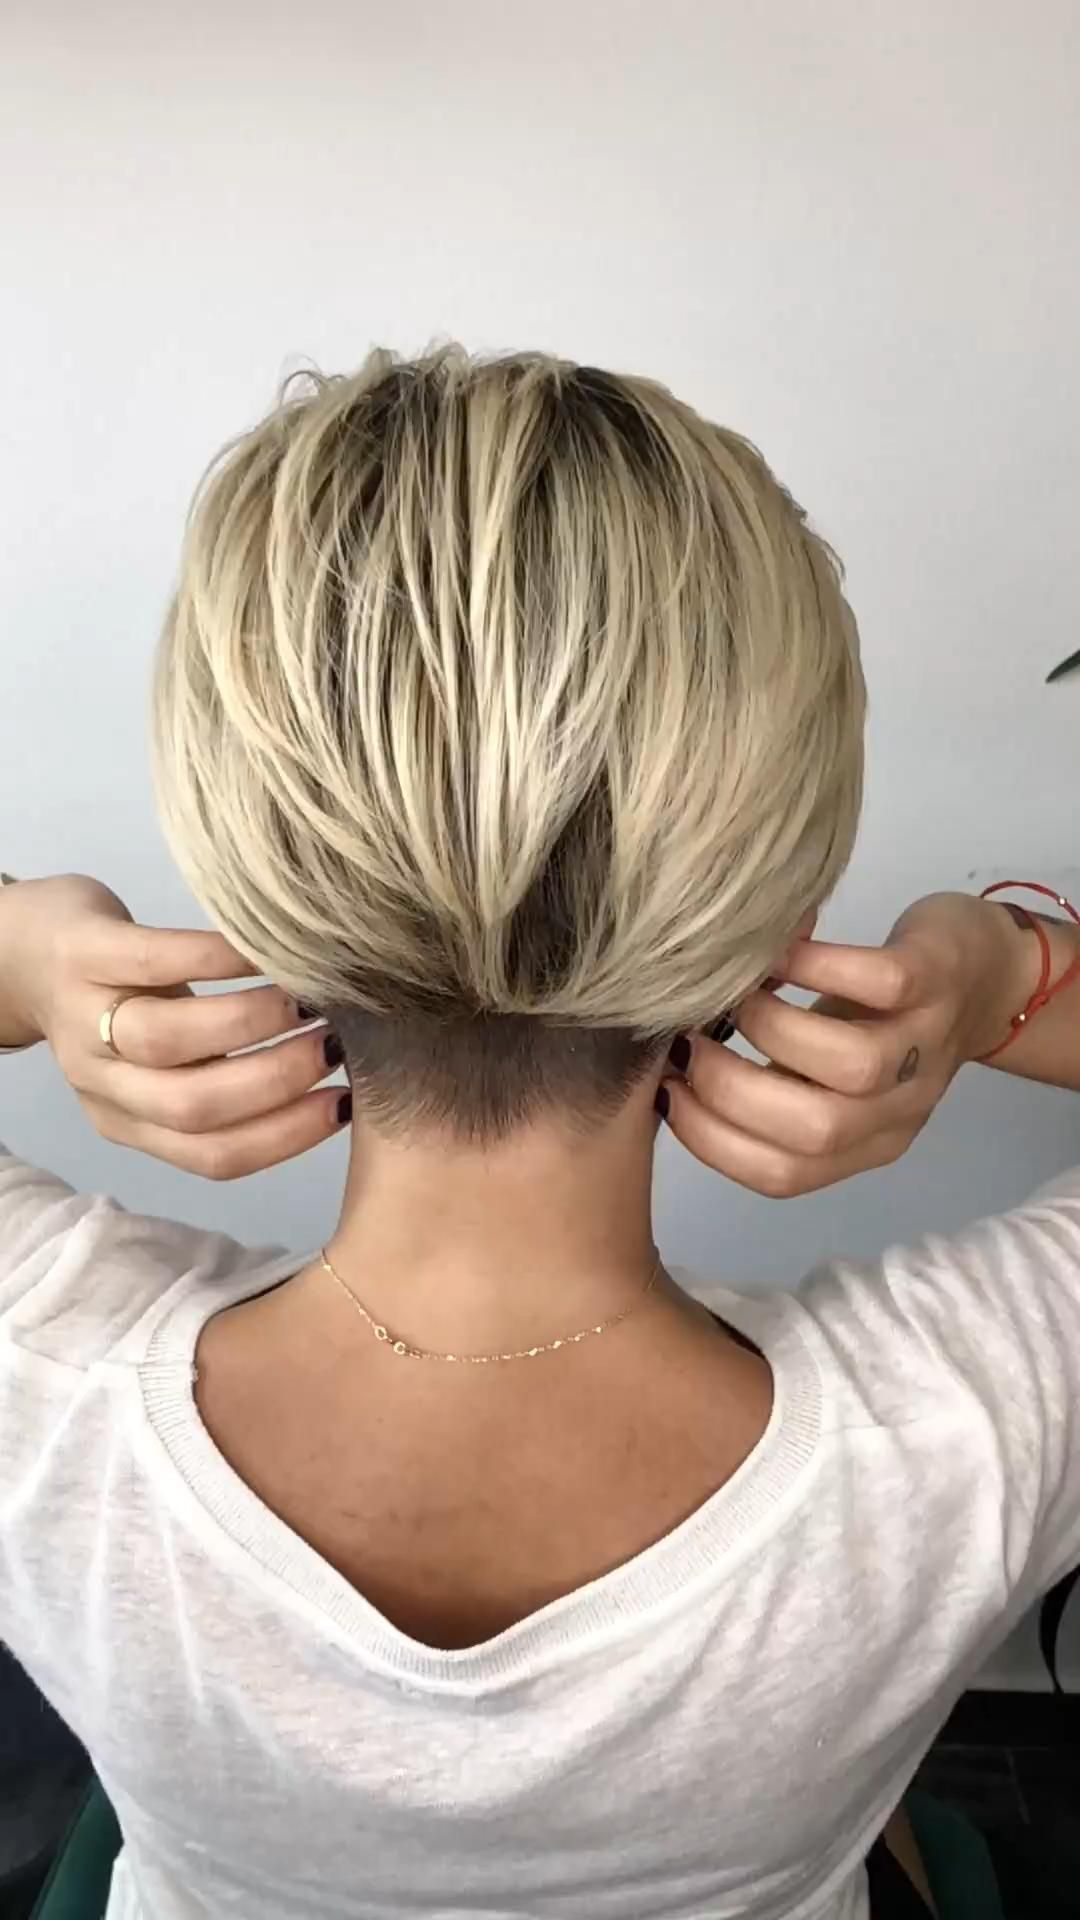 Shaved short pixie bob haircut - Hairstyles